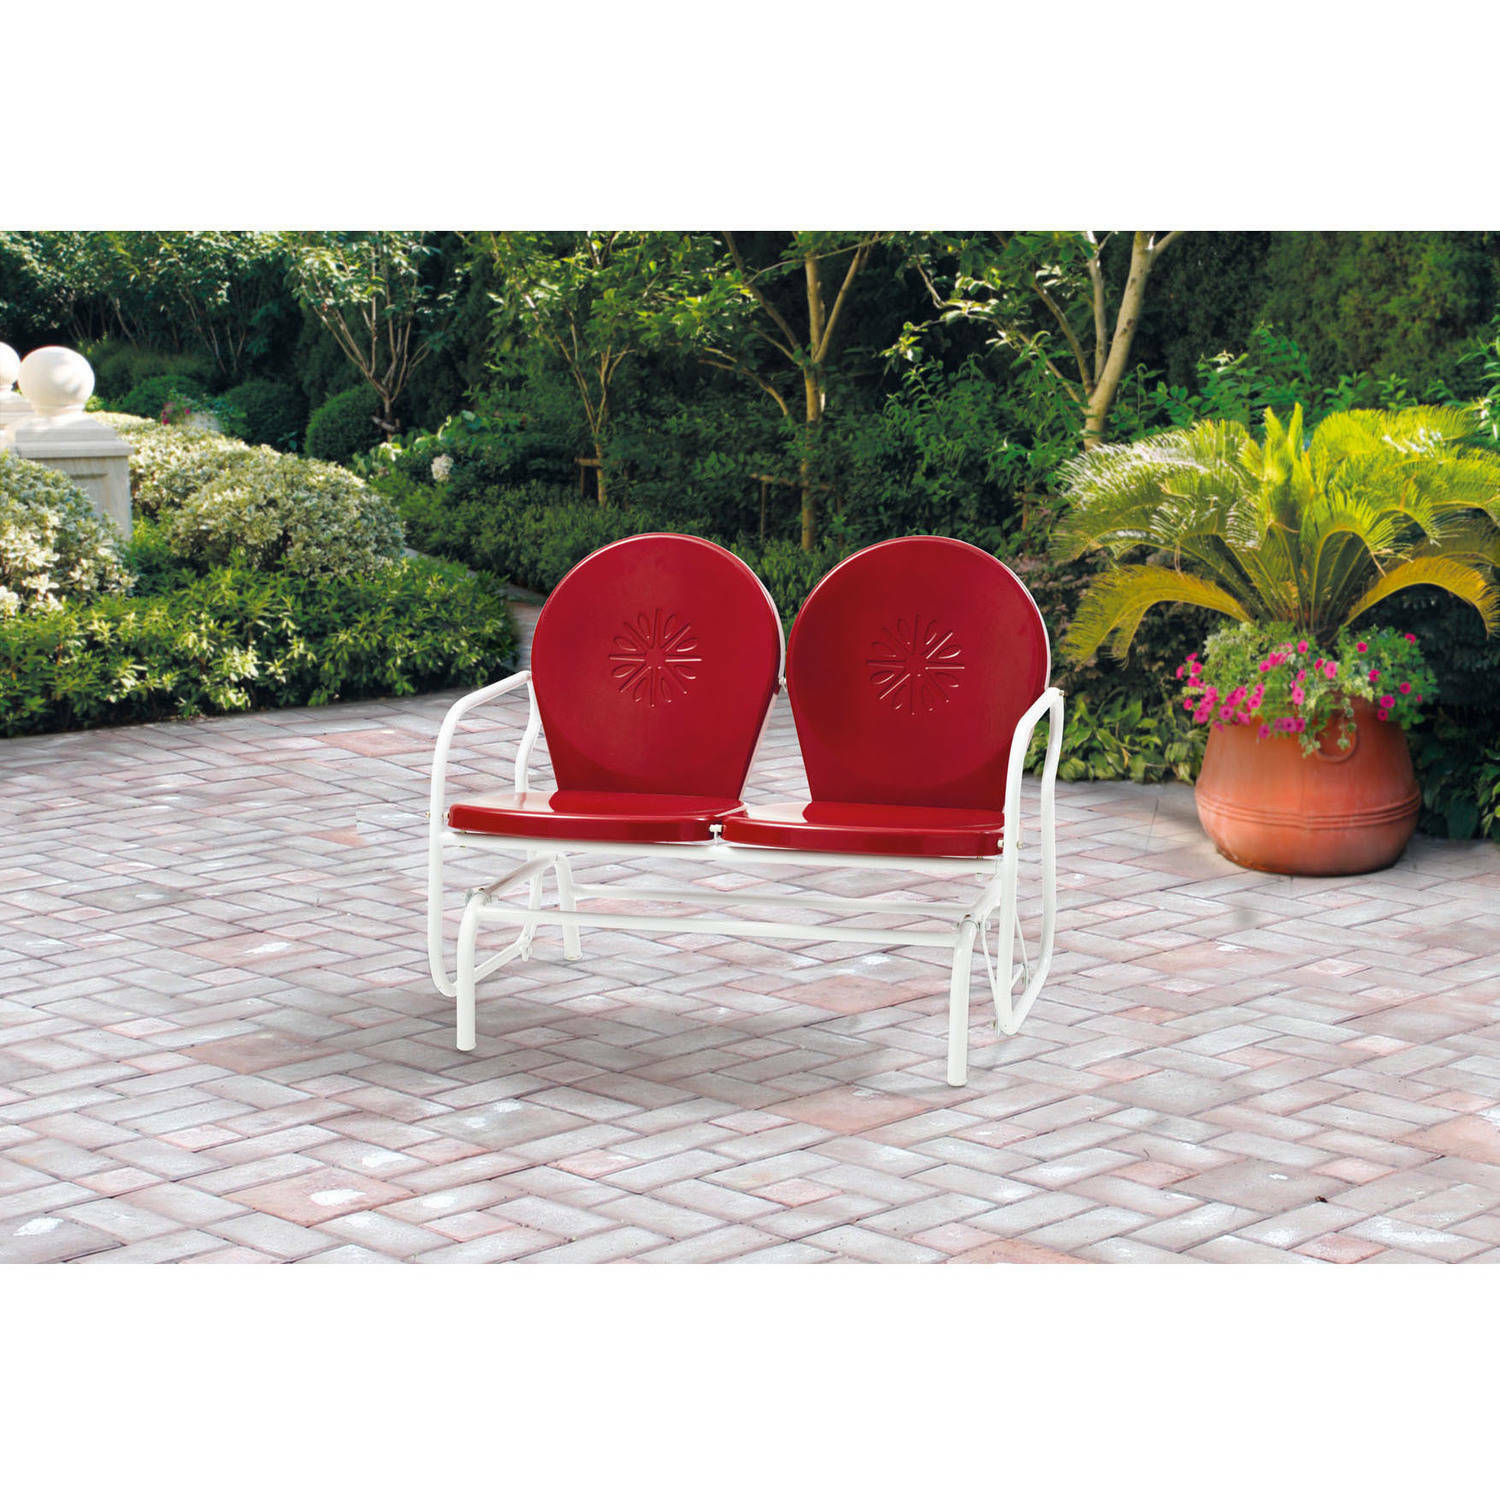 Retro Metal Glider Garden Seating Outdoor Furniture Yard Patio Red Chair  Seats 2 With Metal Retro Glider Benches (Image 12 of 25)